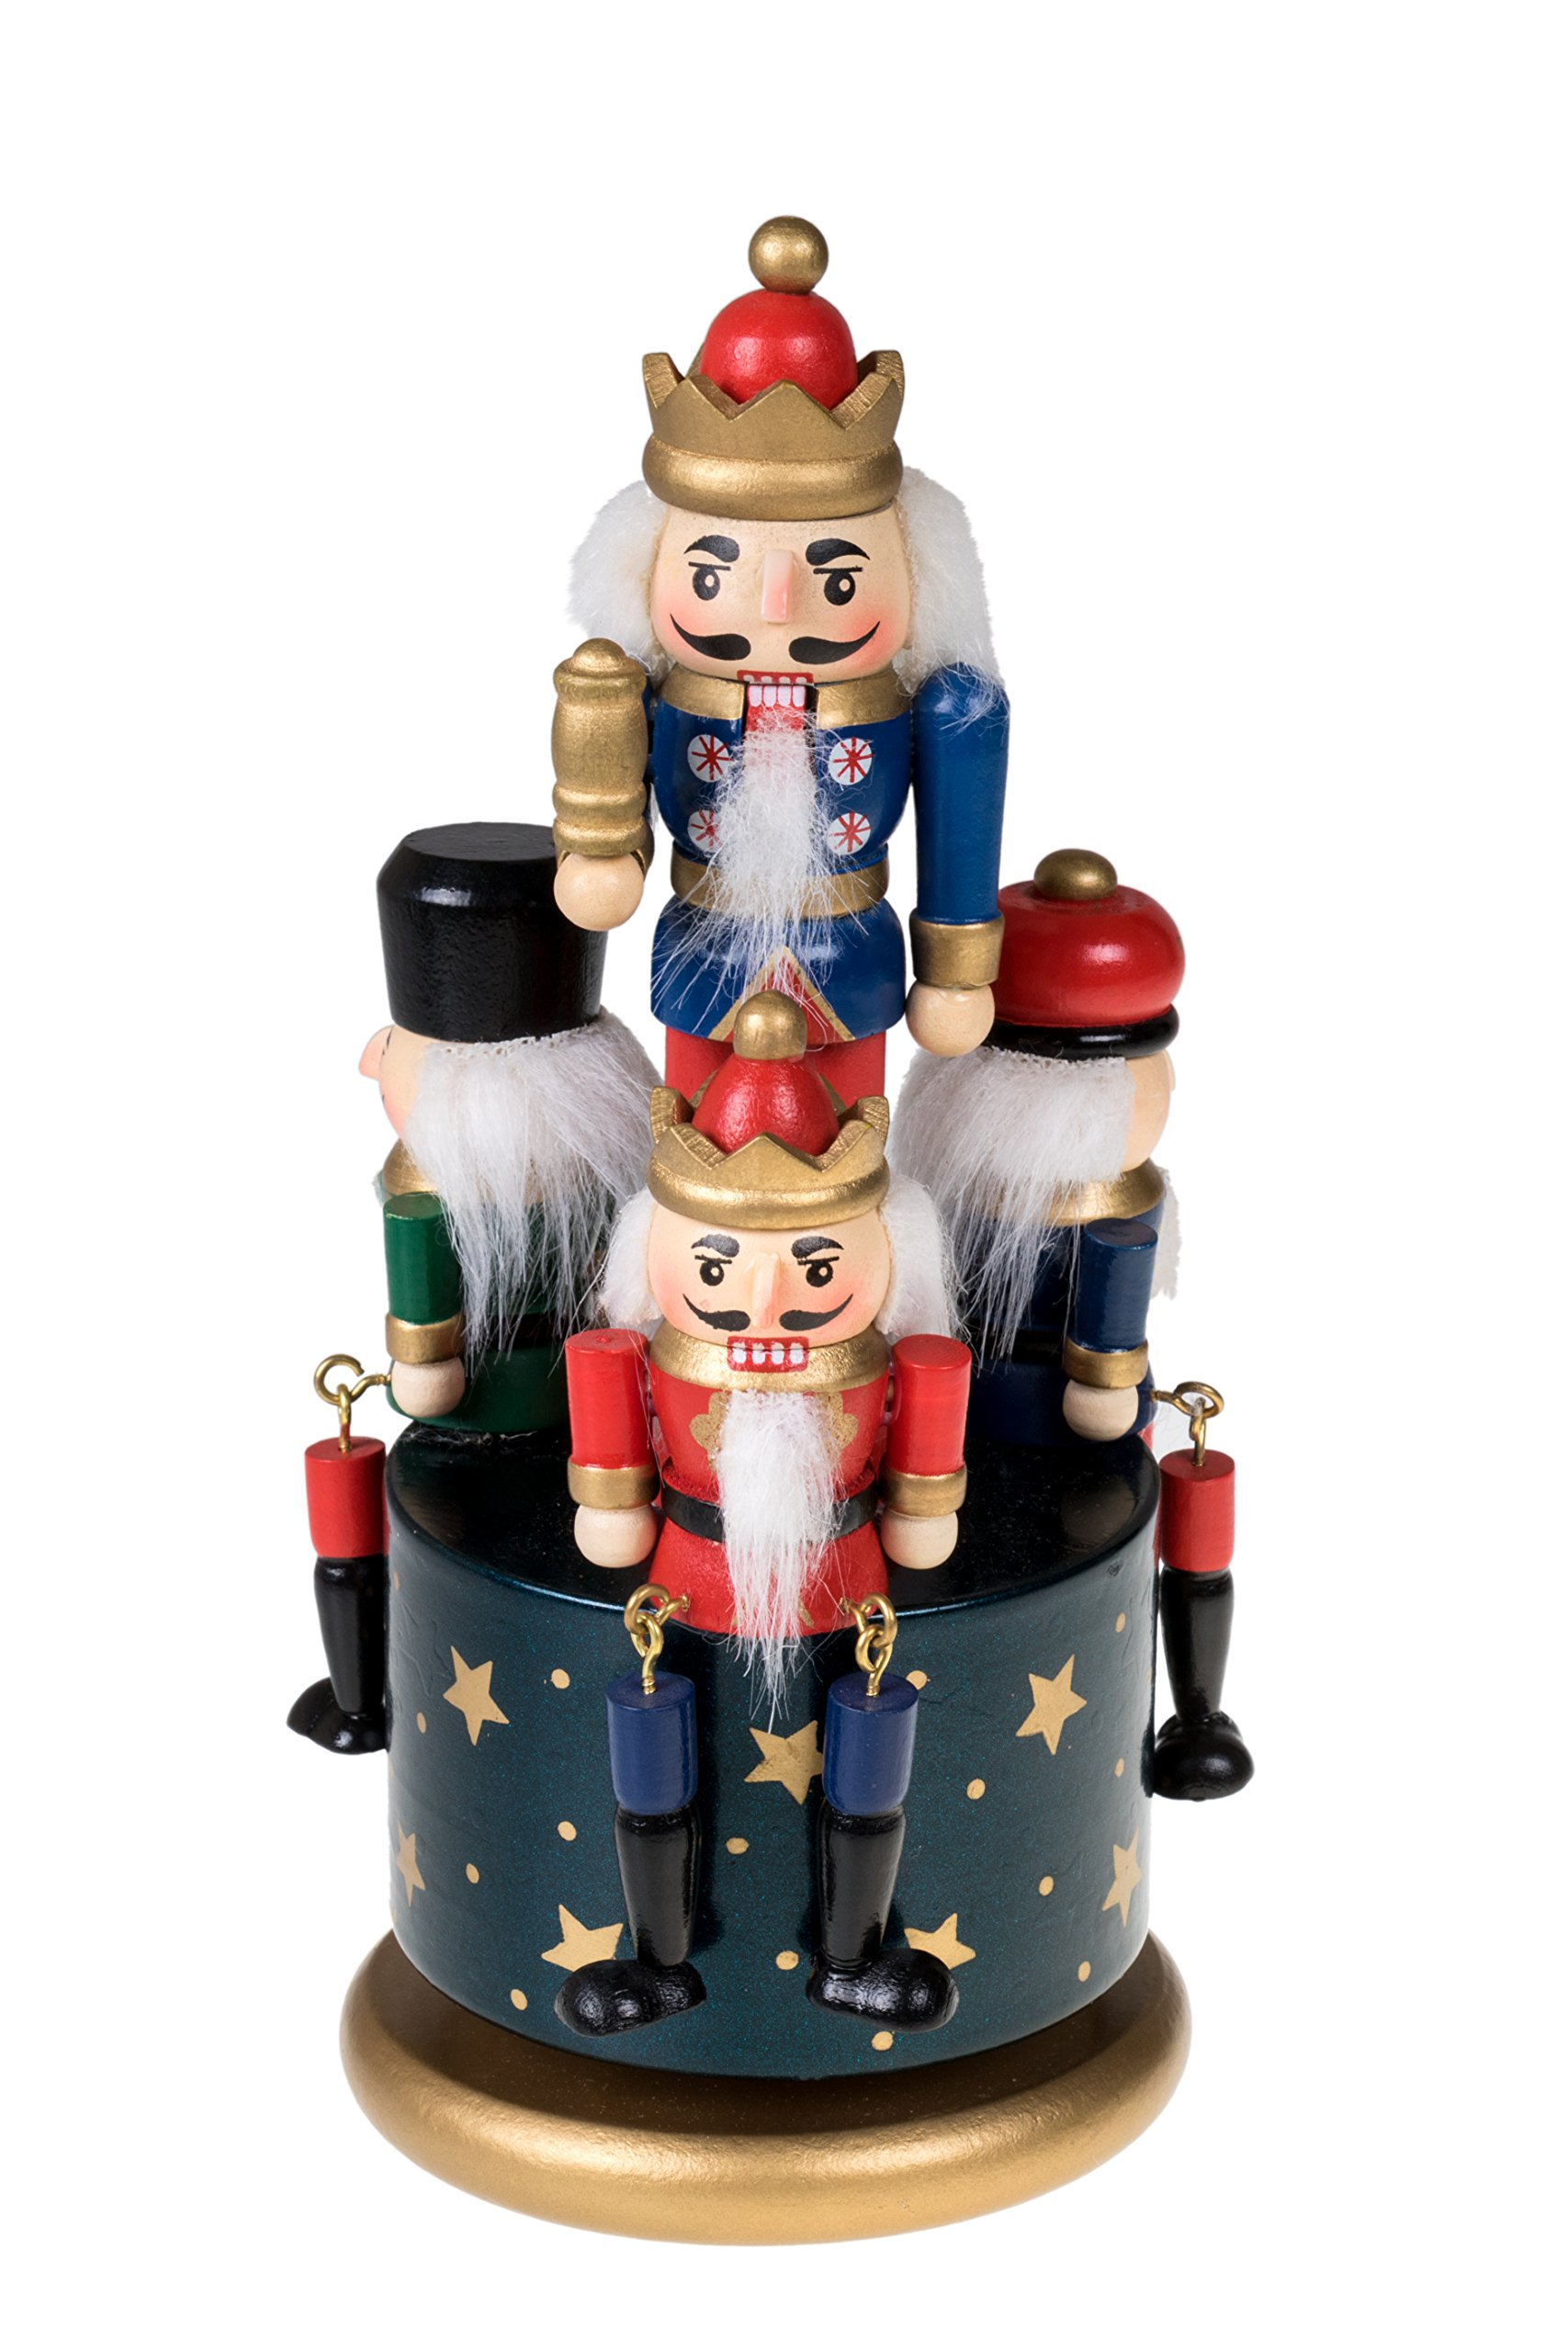 Traditional Wooden Nutcracker Wind Up Music Box | Blue, Red, Gold, and Green Kings and Soldiers | Festive Christmas Decor | 8'' Tall Perfect for Shelves and Tables